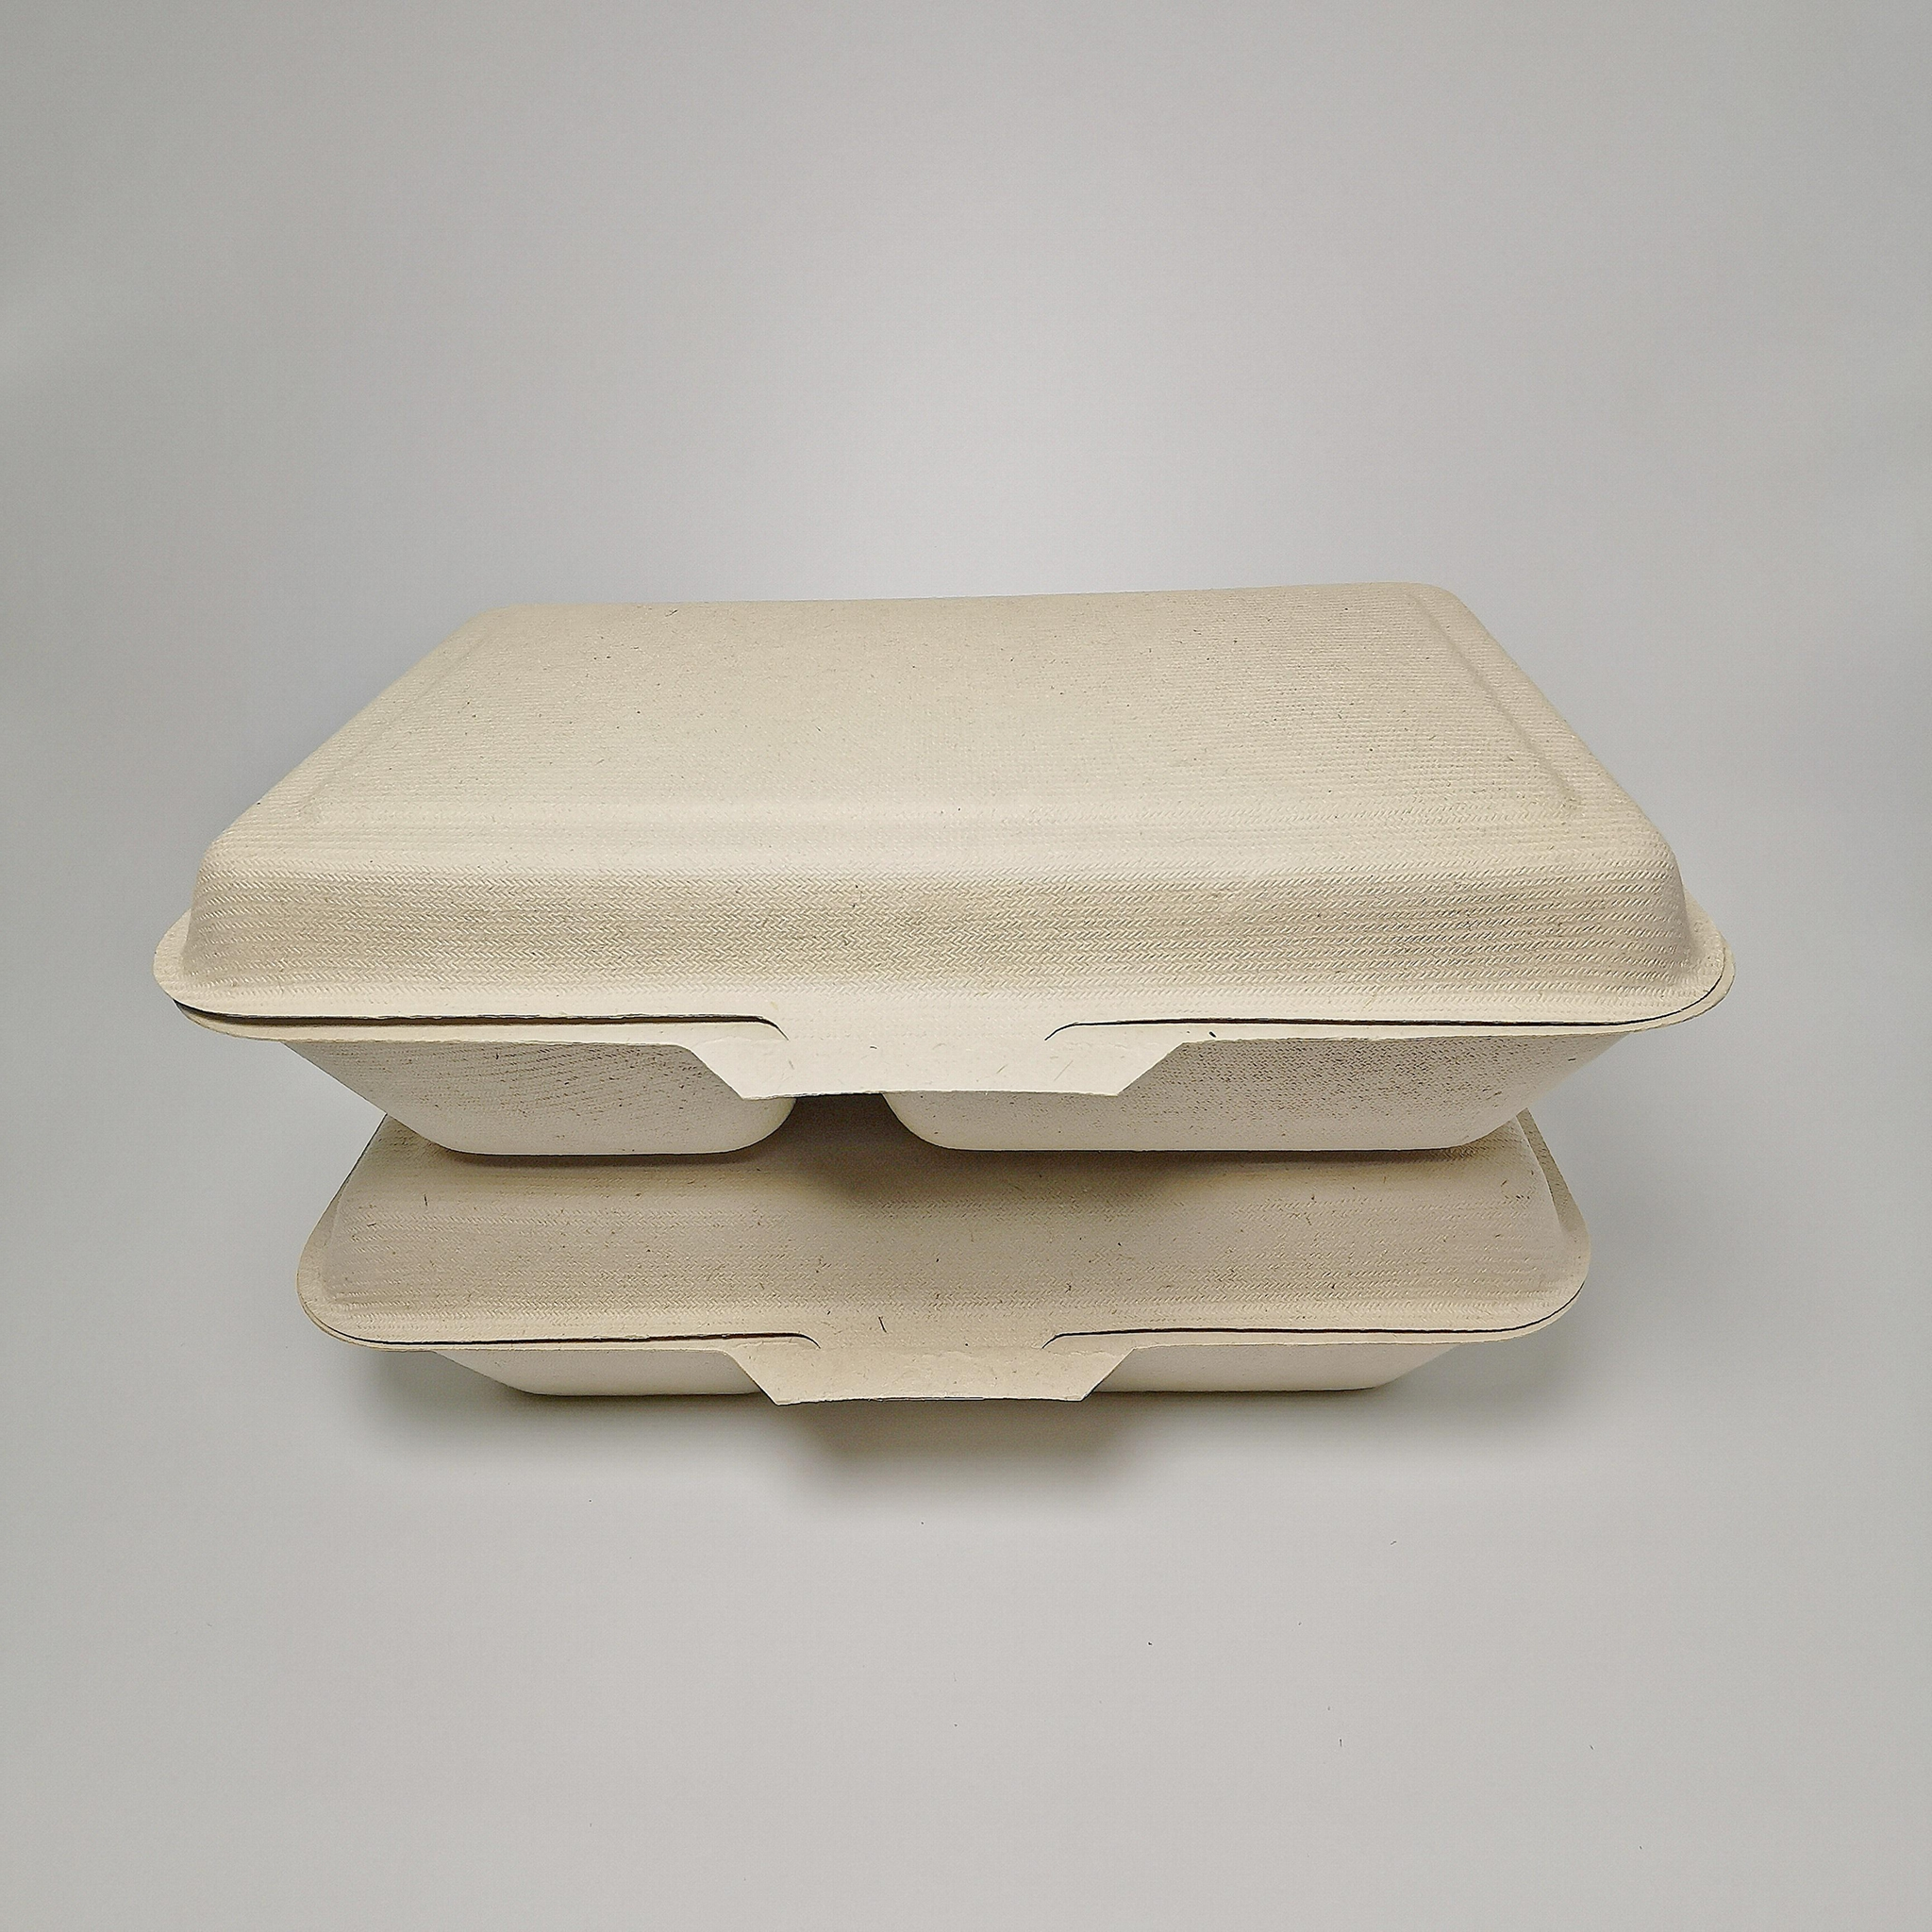 1000ML 2 compartment Eco food packaging biodegradable clamshell box 4